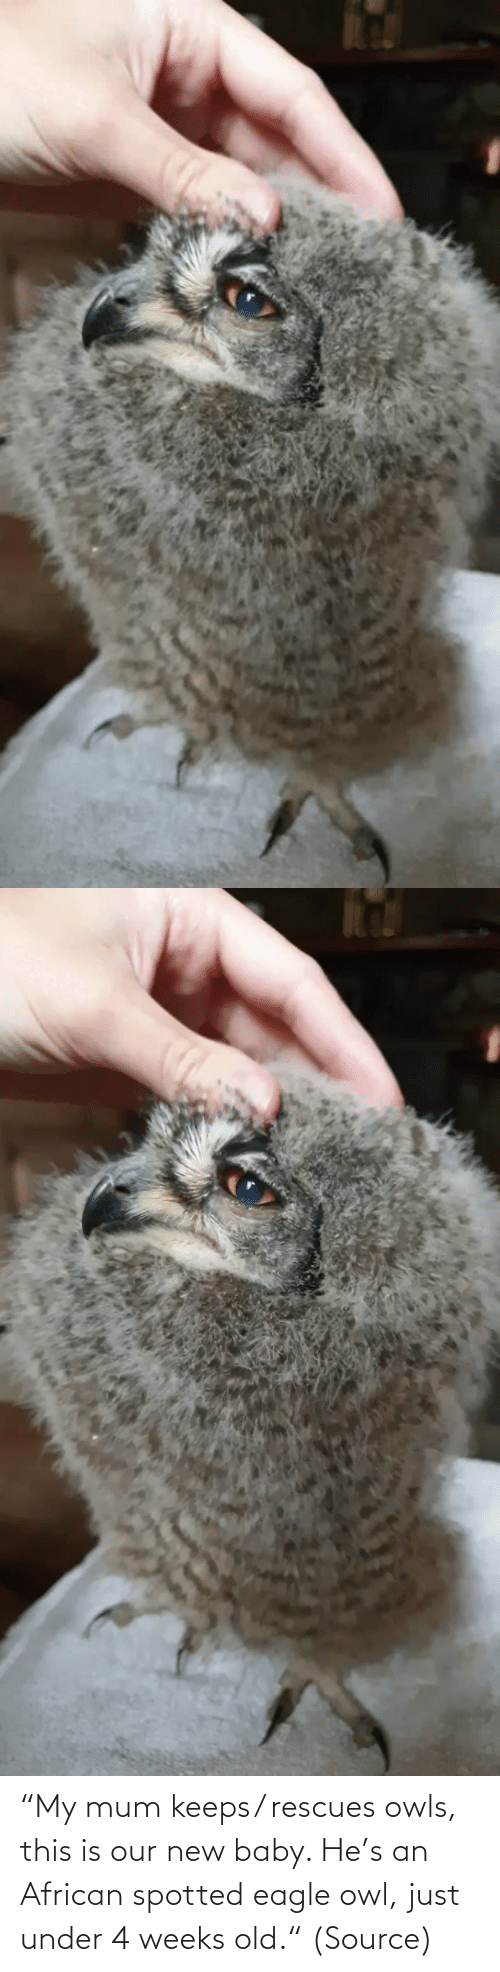 "Our: ""My mum keeps/ rescues owls, this is our new baby. He's an African spotted eagle owl, just under 4 weeks old."" (Source)"